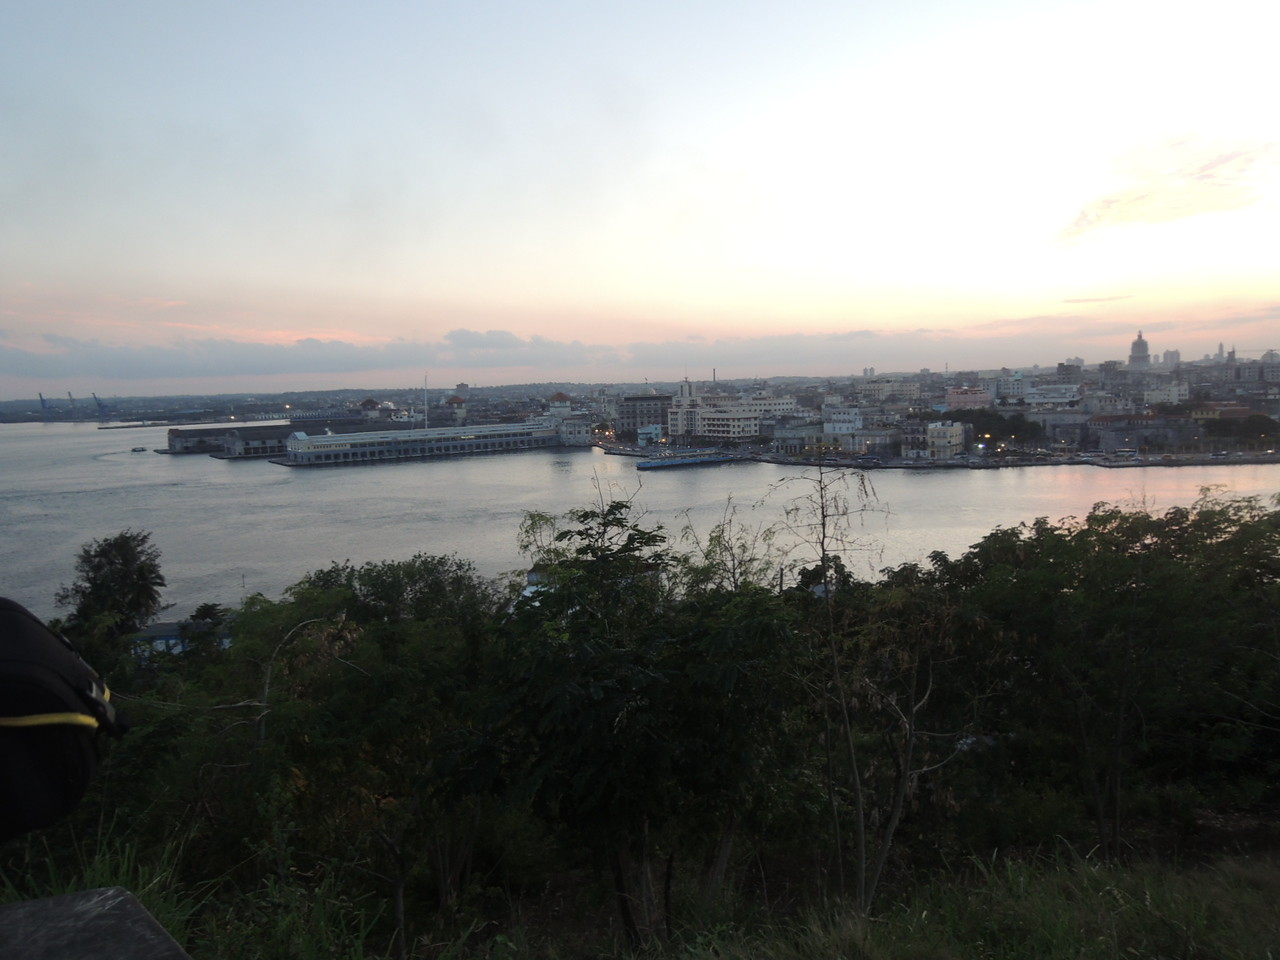 Downtown Havana across the harbor.  You can see why a major city grew here.